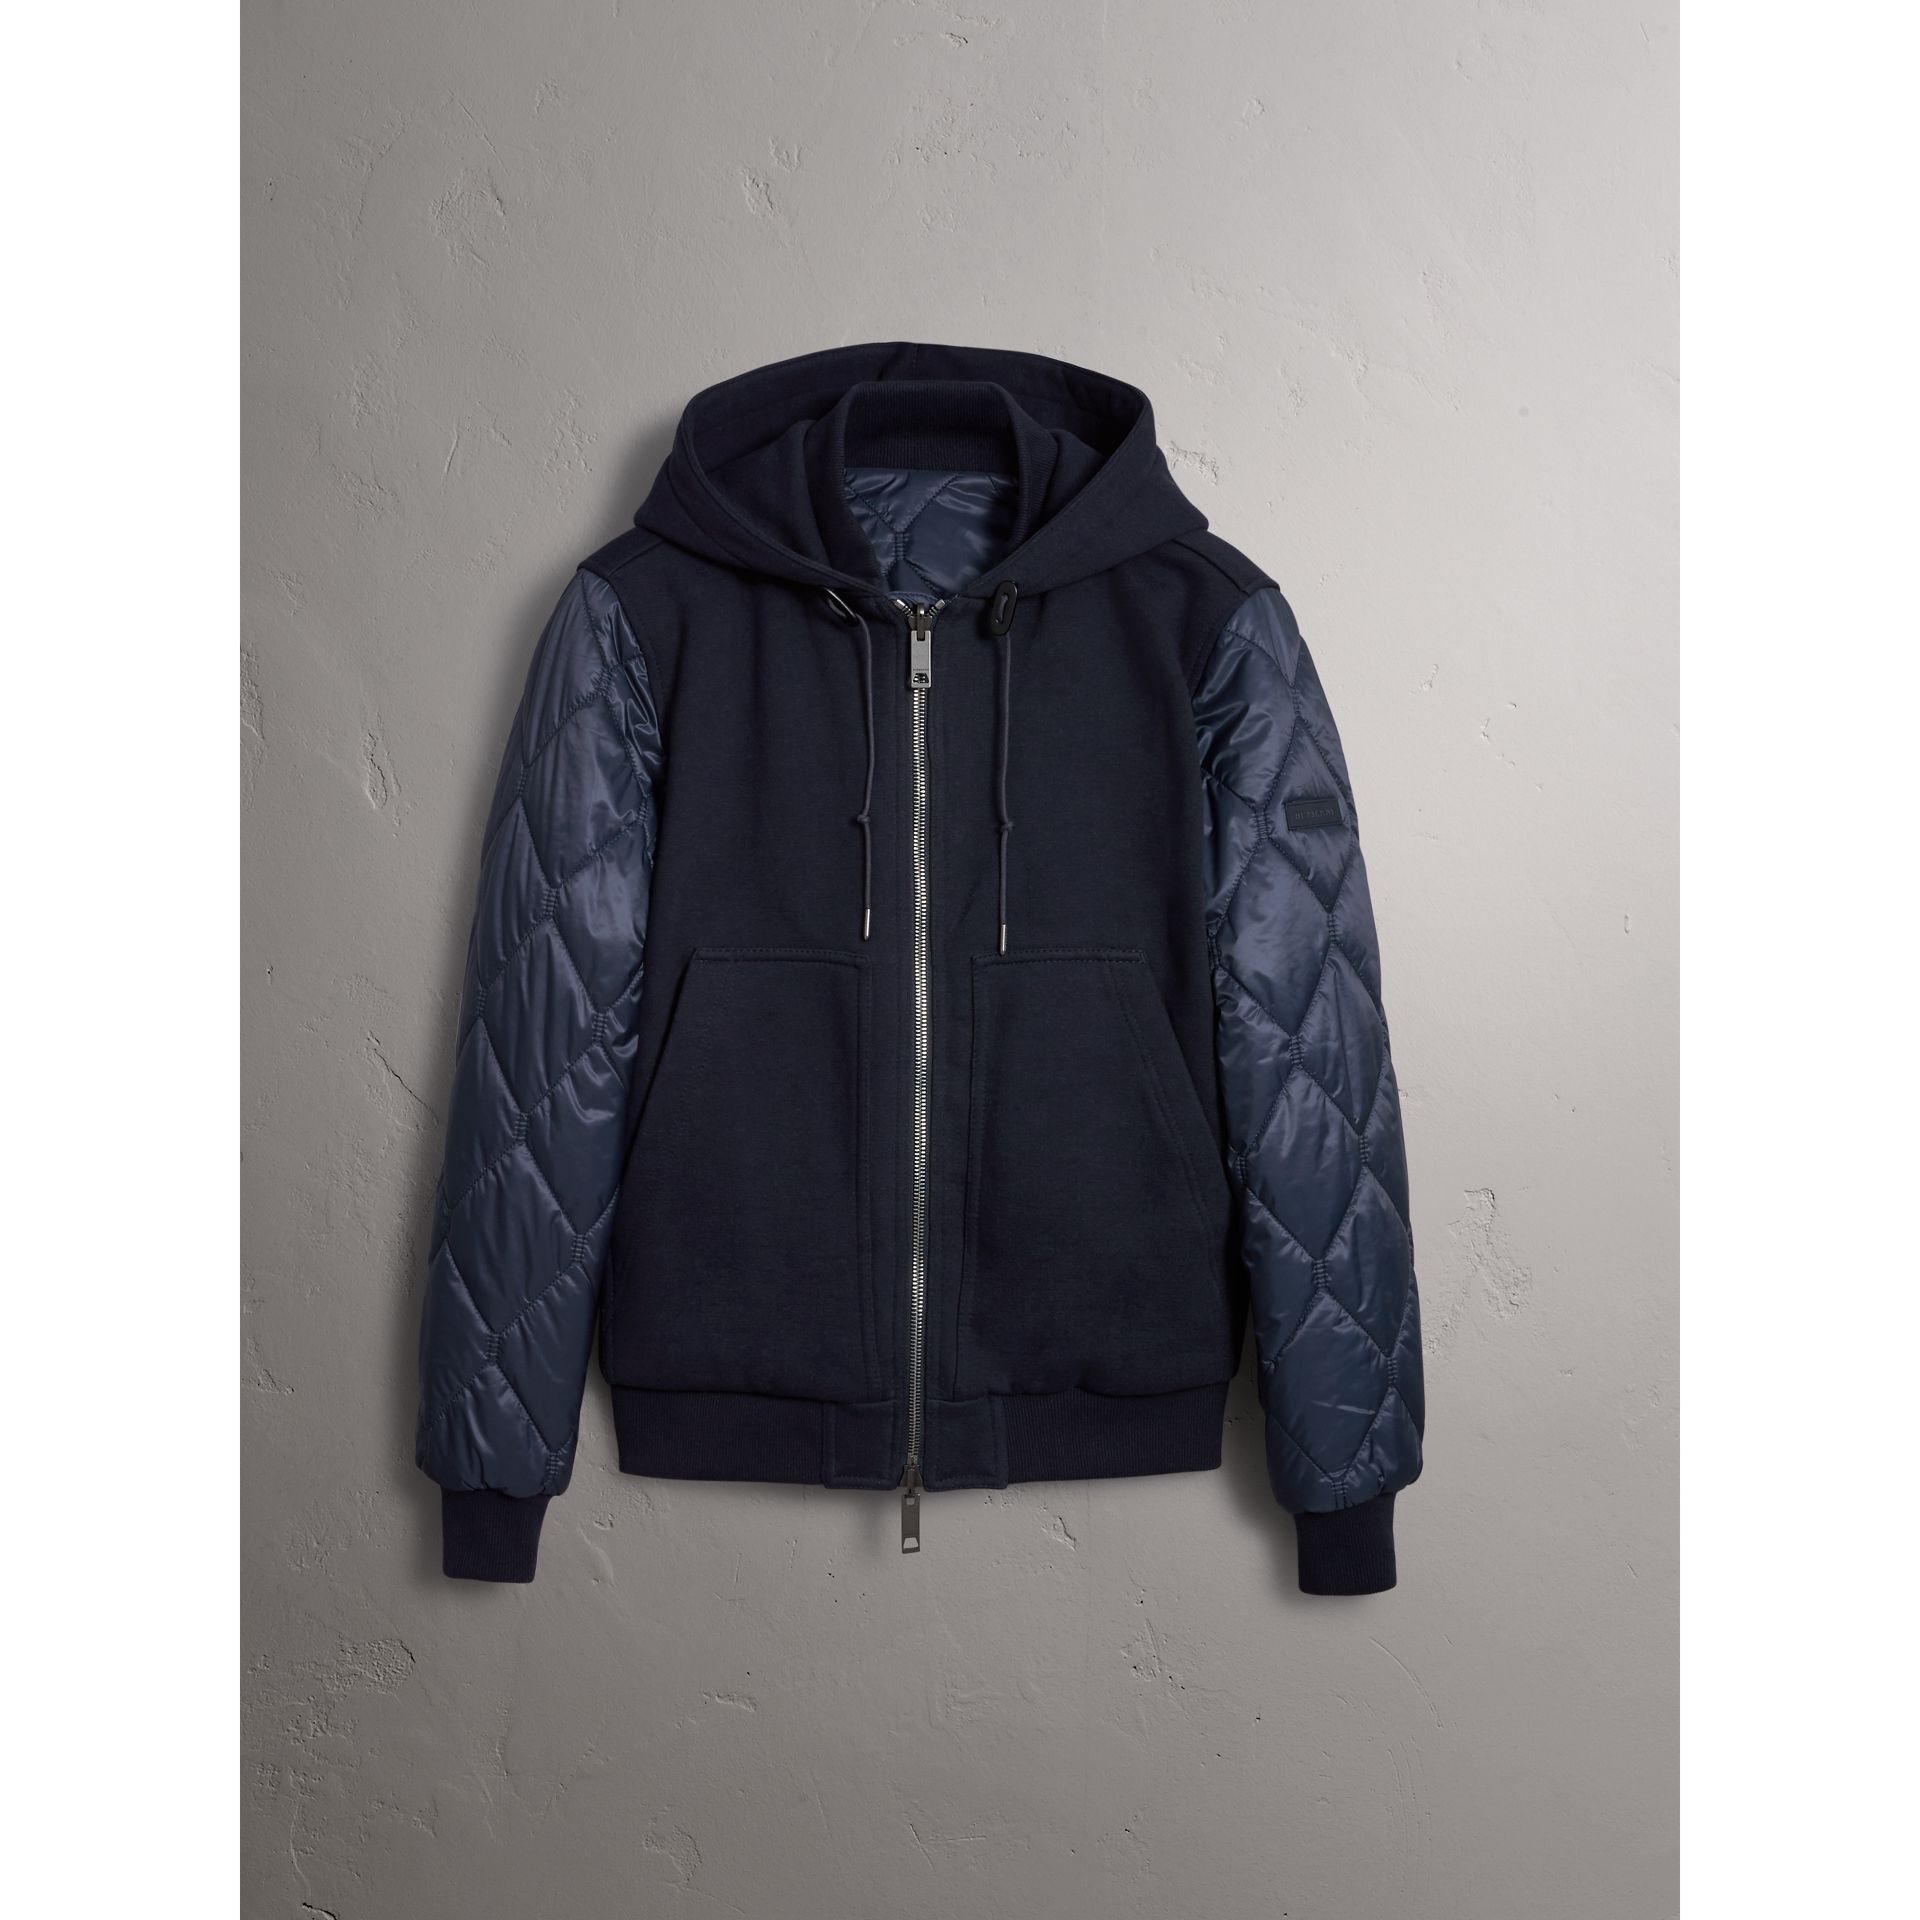 Burberry Navy Reversible Quilted Cotton Hooded Bomber Jacket